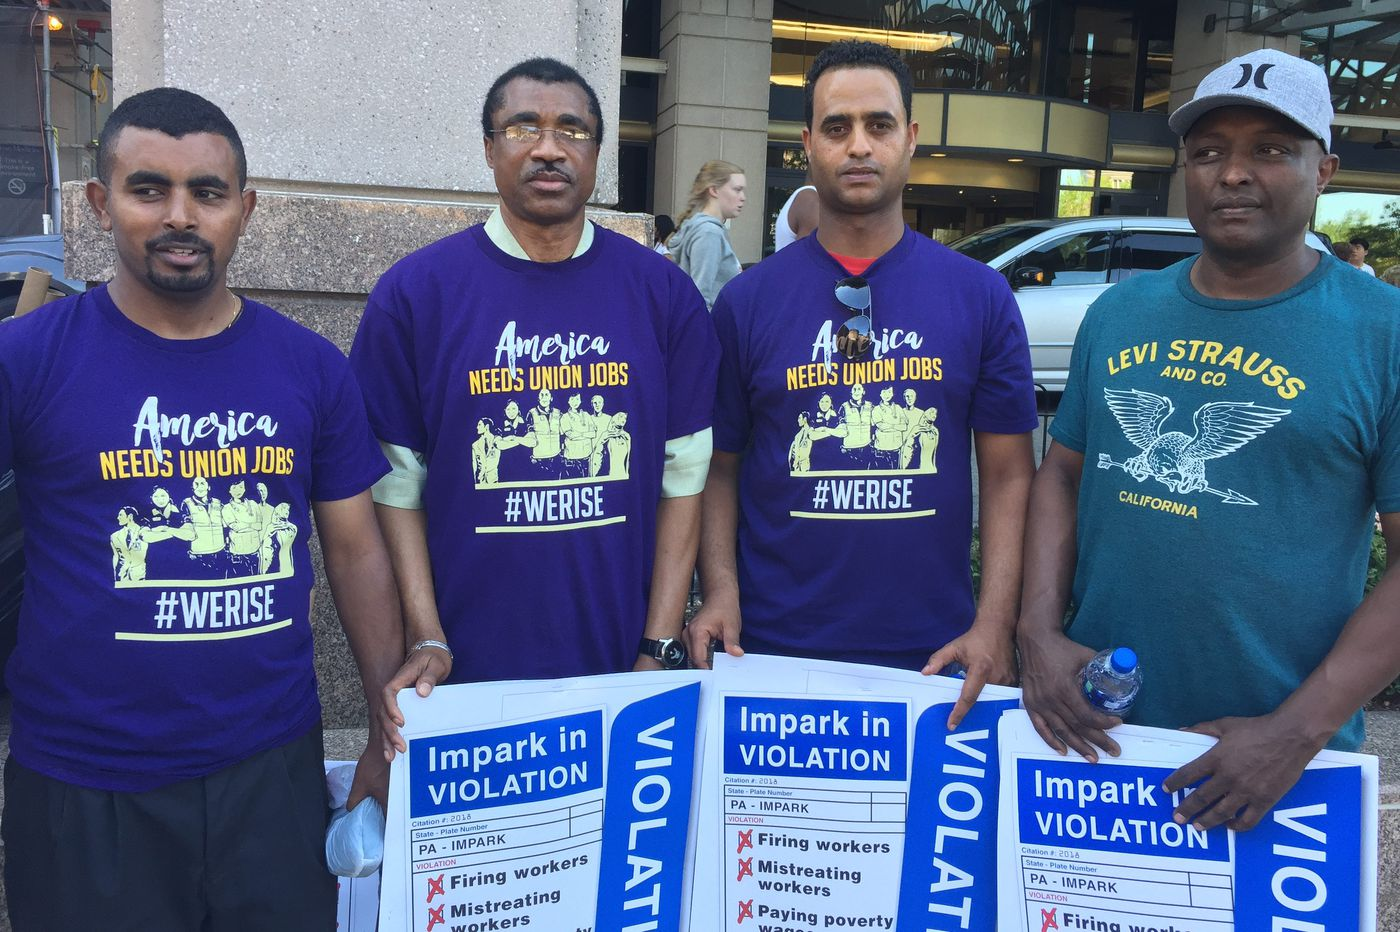 African valets who park the cars at Penn Medicine say they got fired after trying to unionize